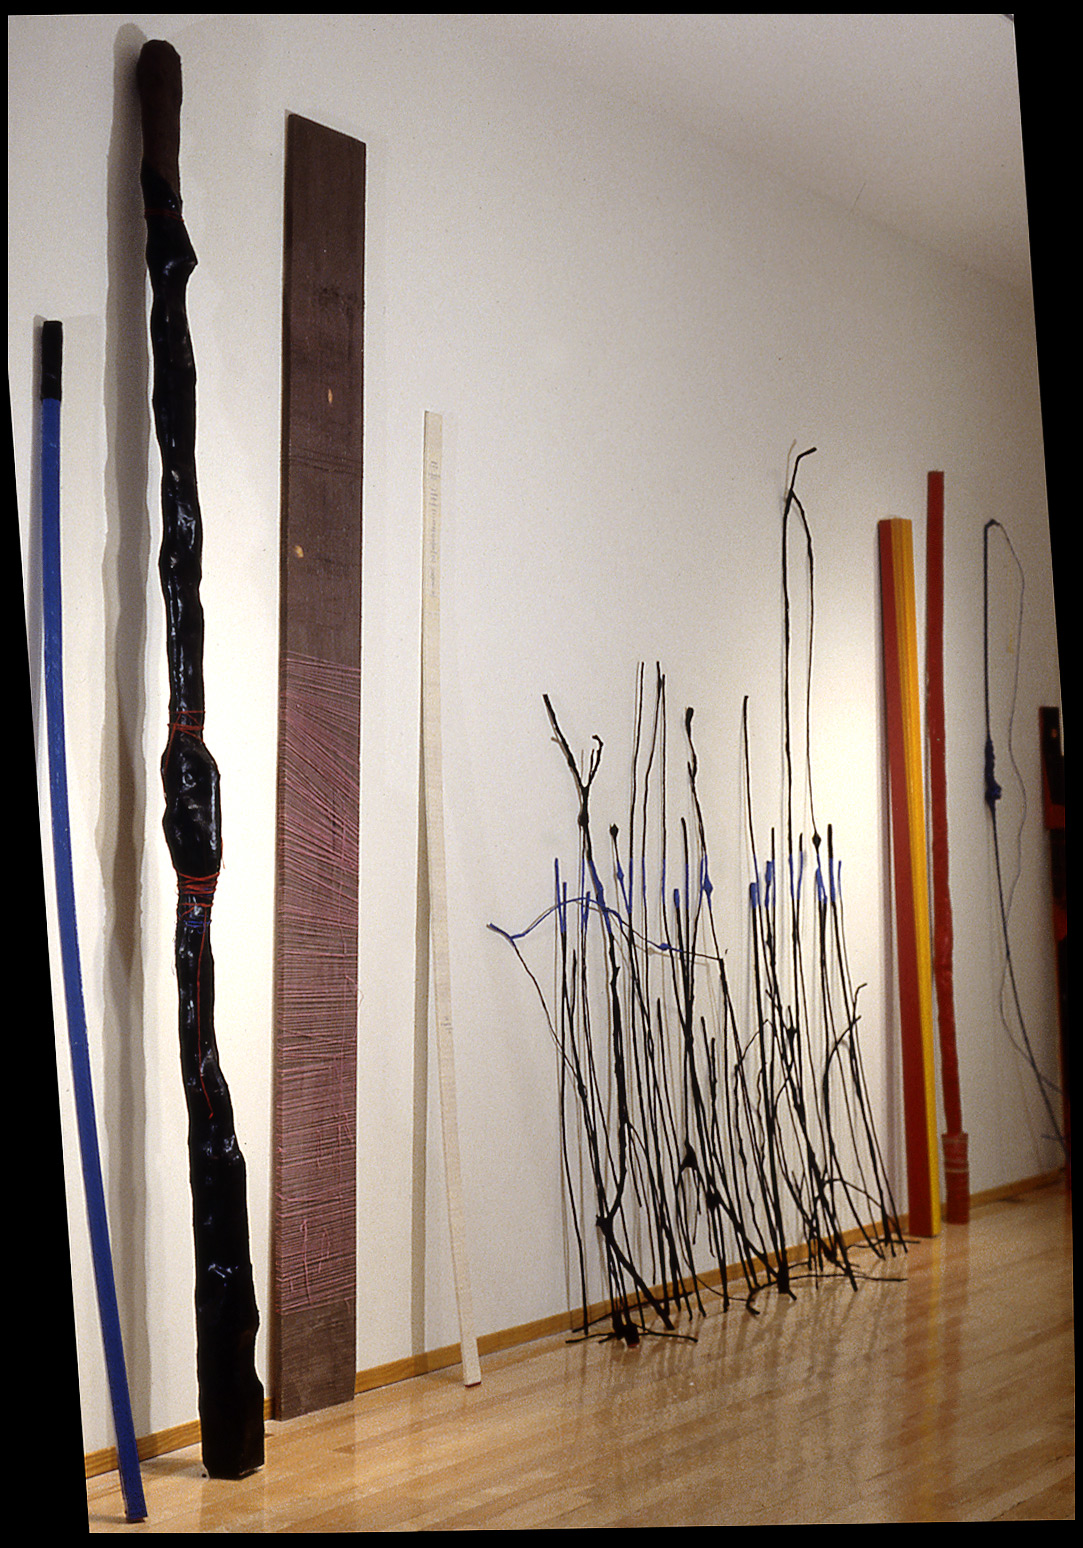 Family and Friends, 1999. tape & string on wood and various materials, tallest at 11 feet.